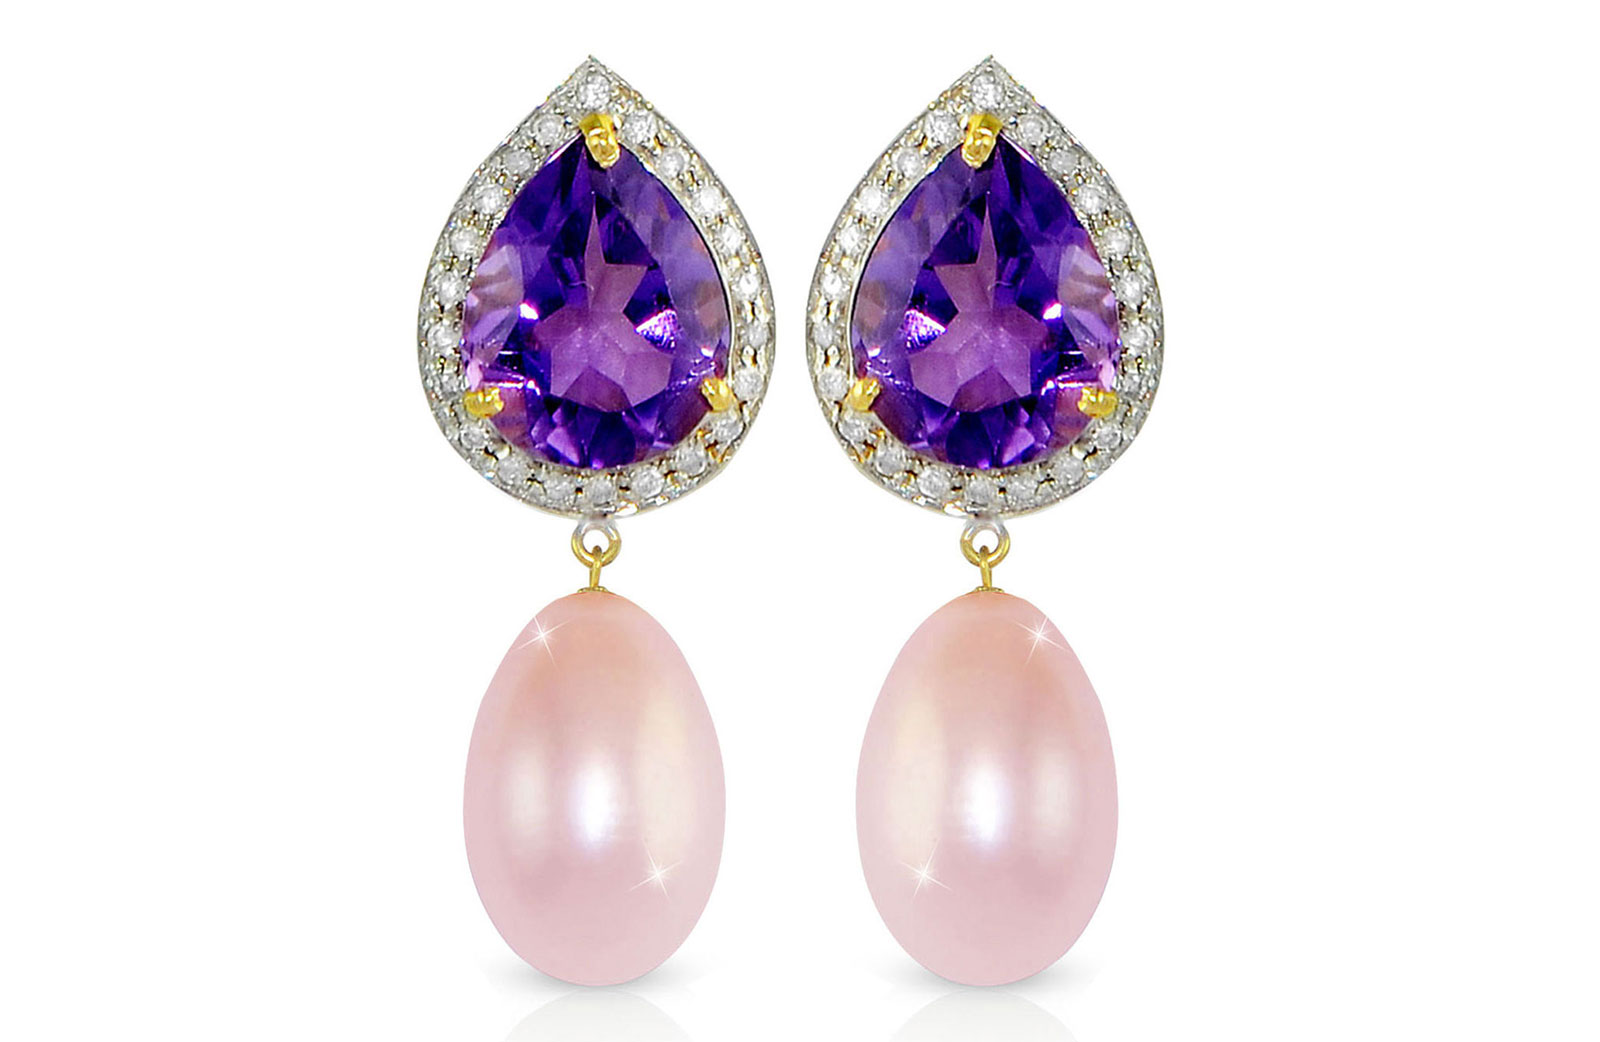 Vera Perla 18K Gold 0.24ct Diamonds, Amethyst and 13mm Purple Pearl Earrings